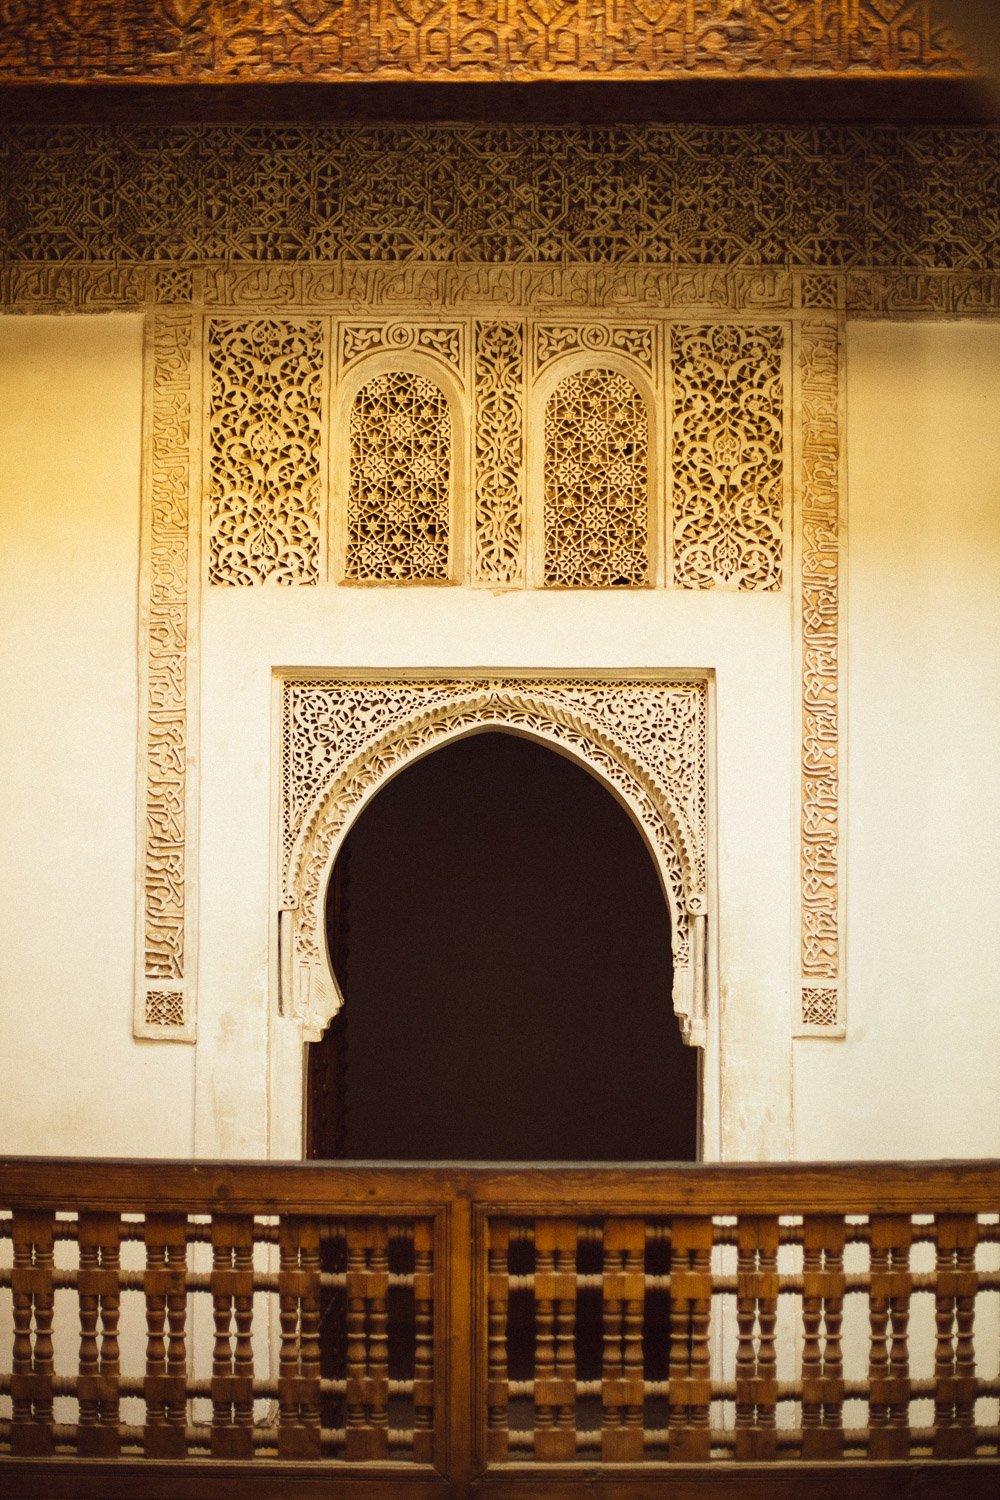 City of Marrakech, Morocco  . Inside the  Ben Youssef Madrasa  Quranic school.